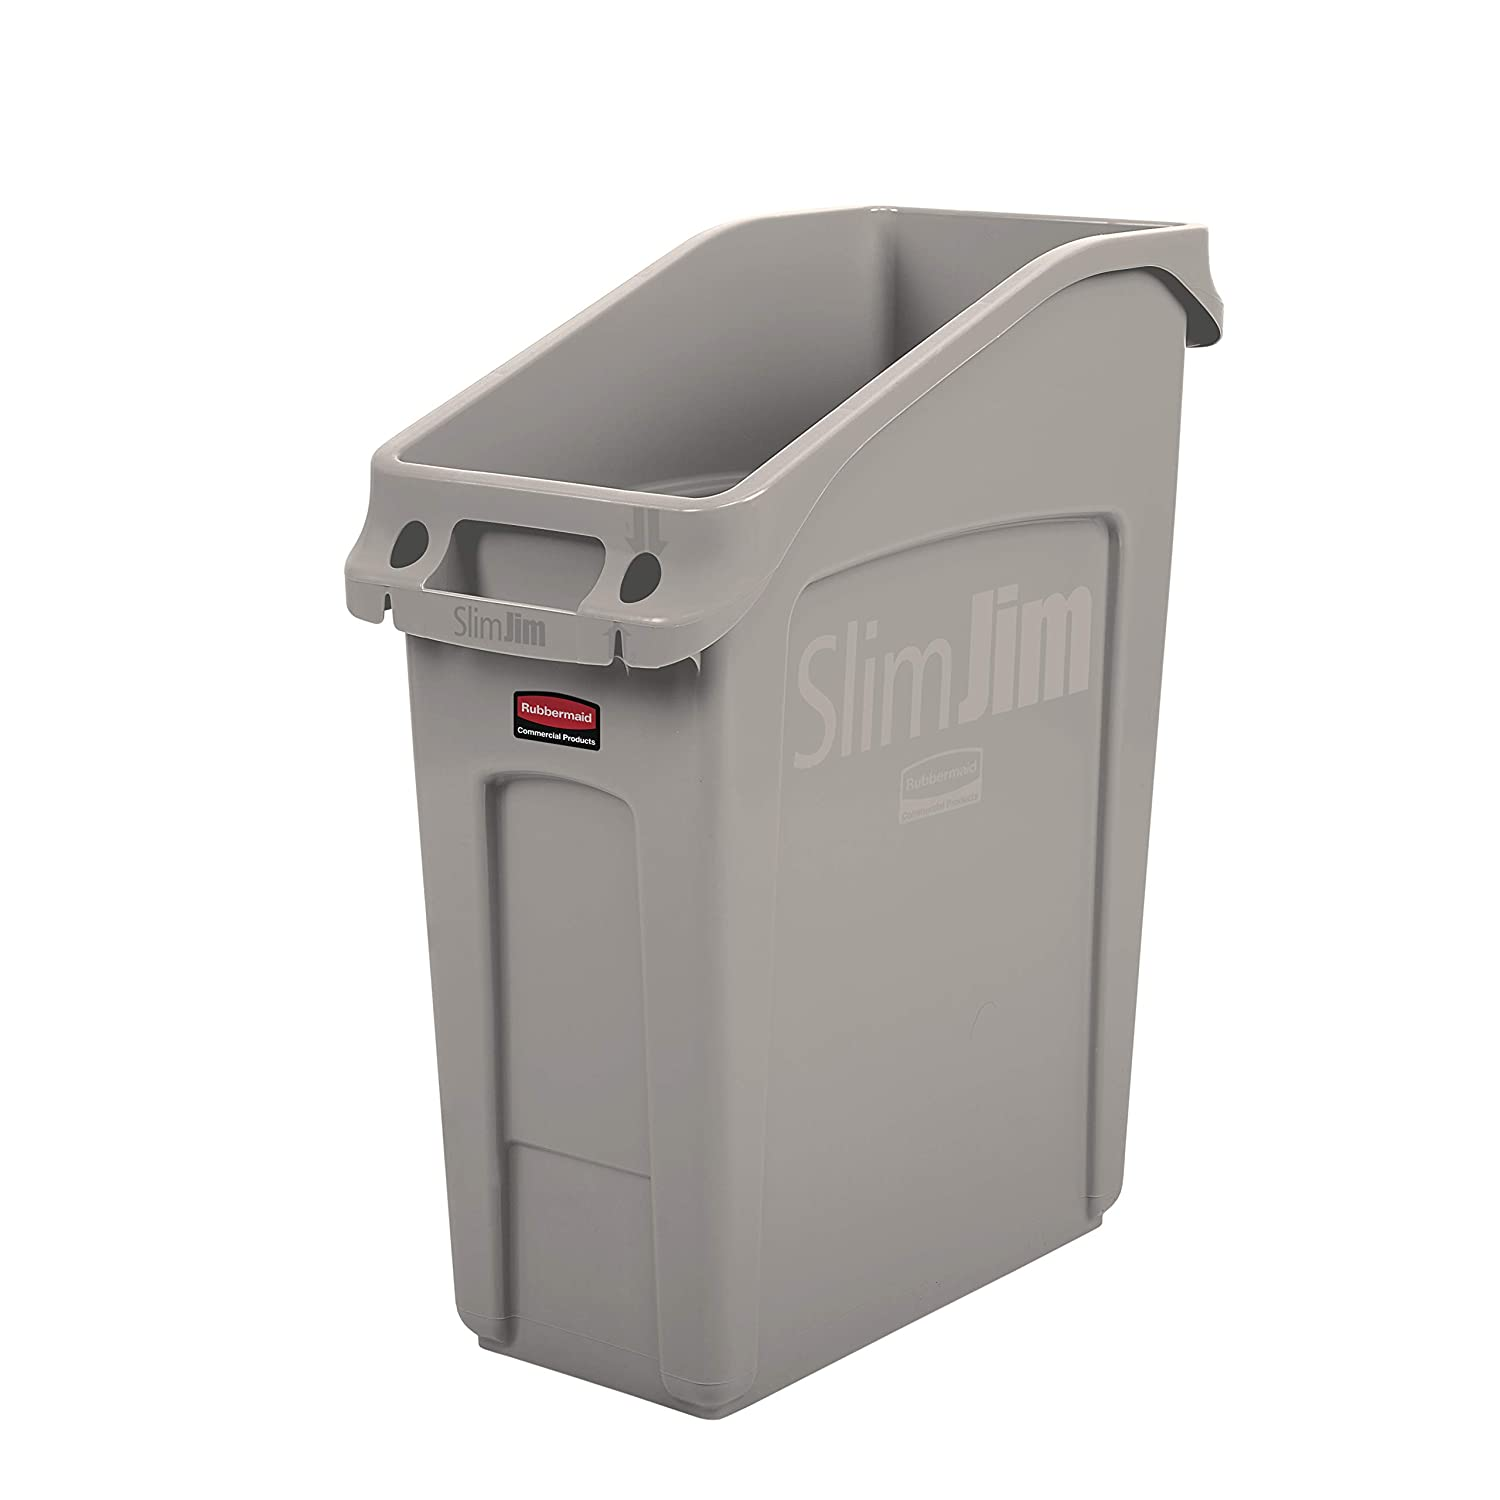 Rubbermaid Commercial Products 2026698 Slim Jim Under Counter Trash Can  With Venting Channels, 13 Gallon, Beige (Pack Of 4): Amazon.com: Industrial  U0026 ...